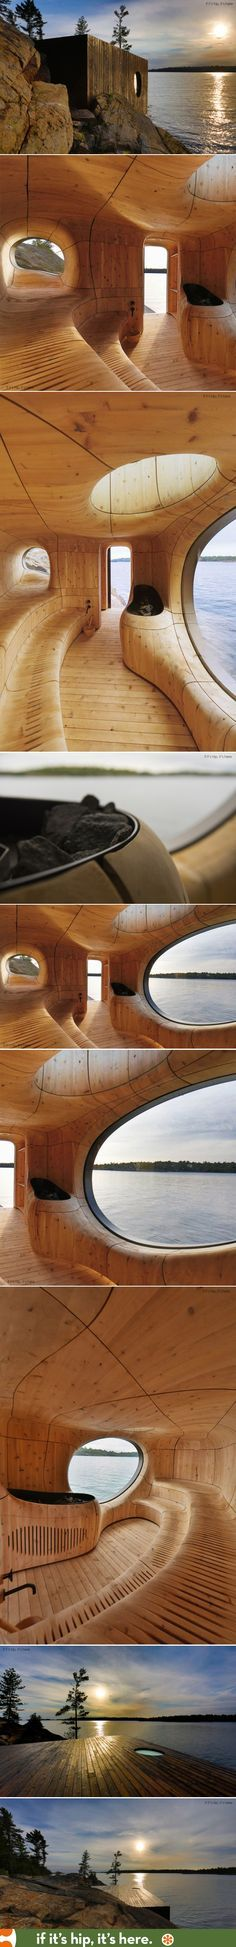 Grotto Sauna is an Amorphic Prefab on the Edge of a Private Island. Saunas, Renovation Design, Sauna Design, Modern Prefab Homes, Natural Homes, Amazing Spaces, Art And Architecture, Interior And Exterior, House Design